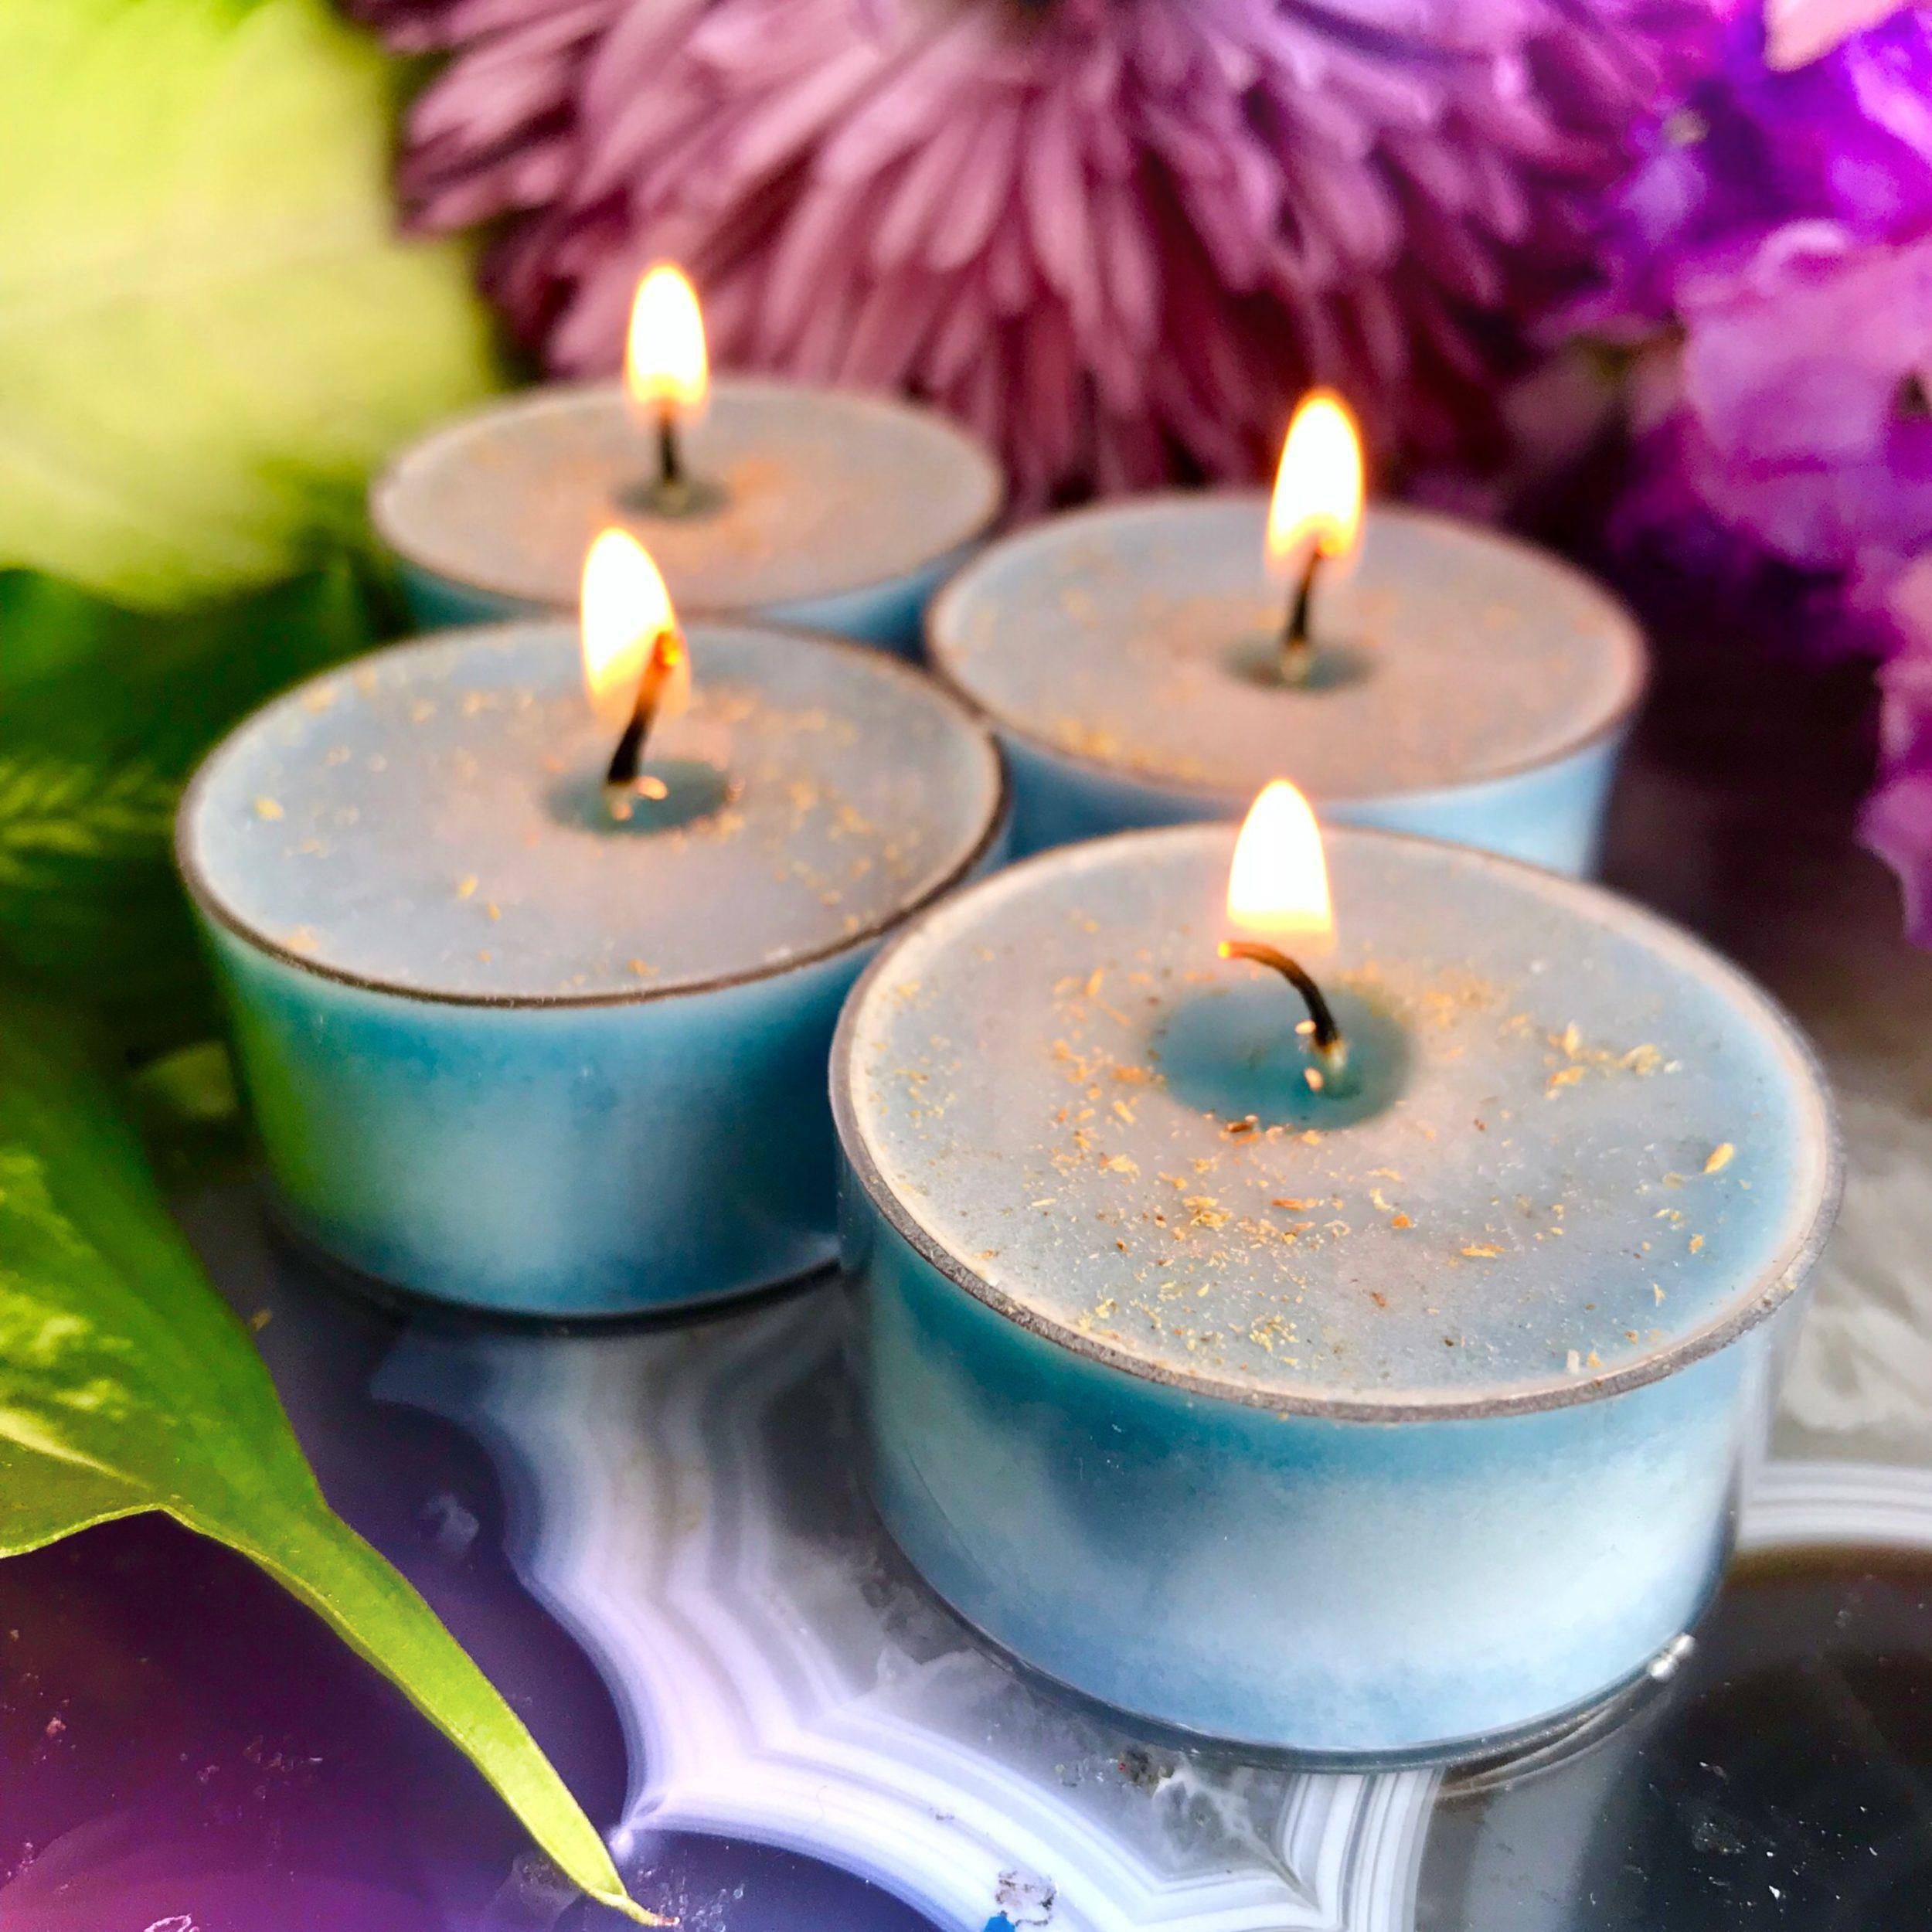 Life_Force_Tealight_Holders_with_Aura_Cleansing_Tealights_3of3_11_6